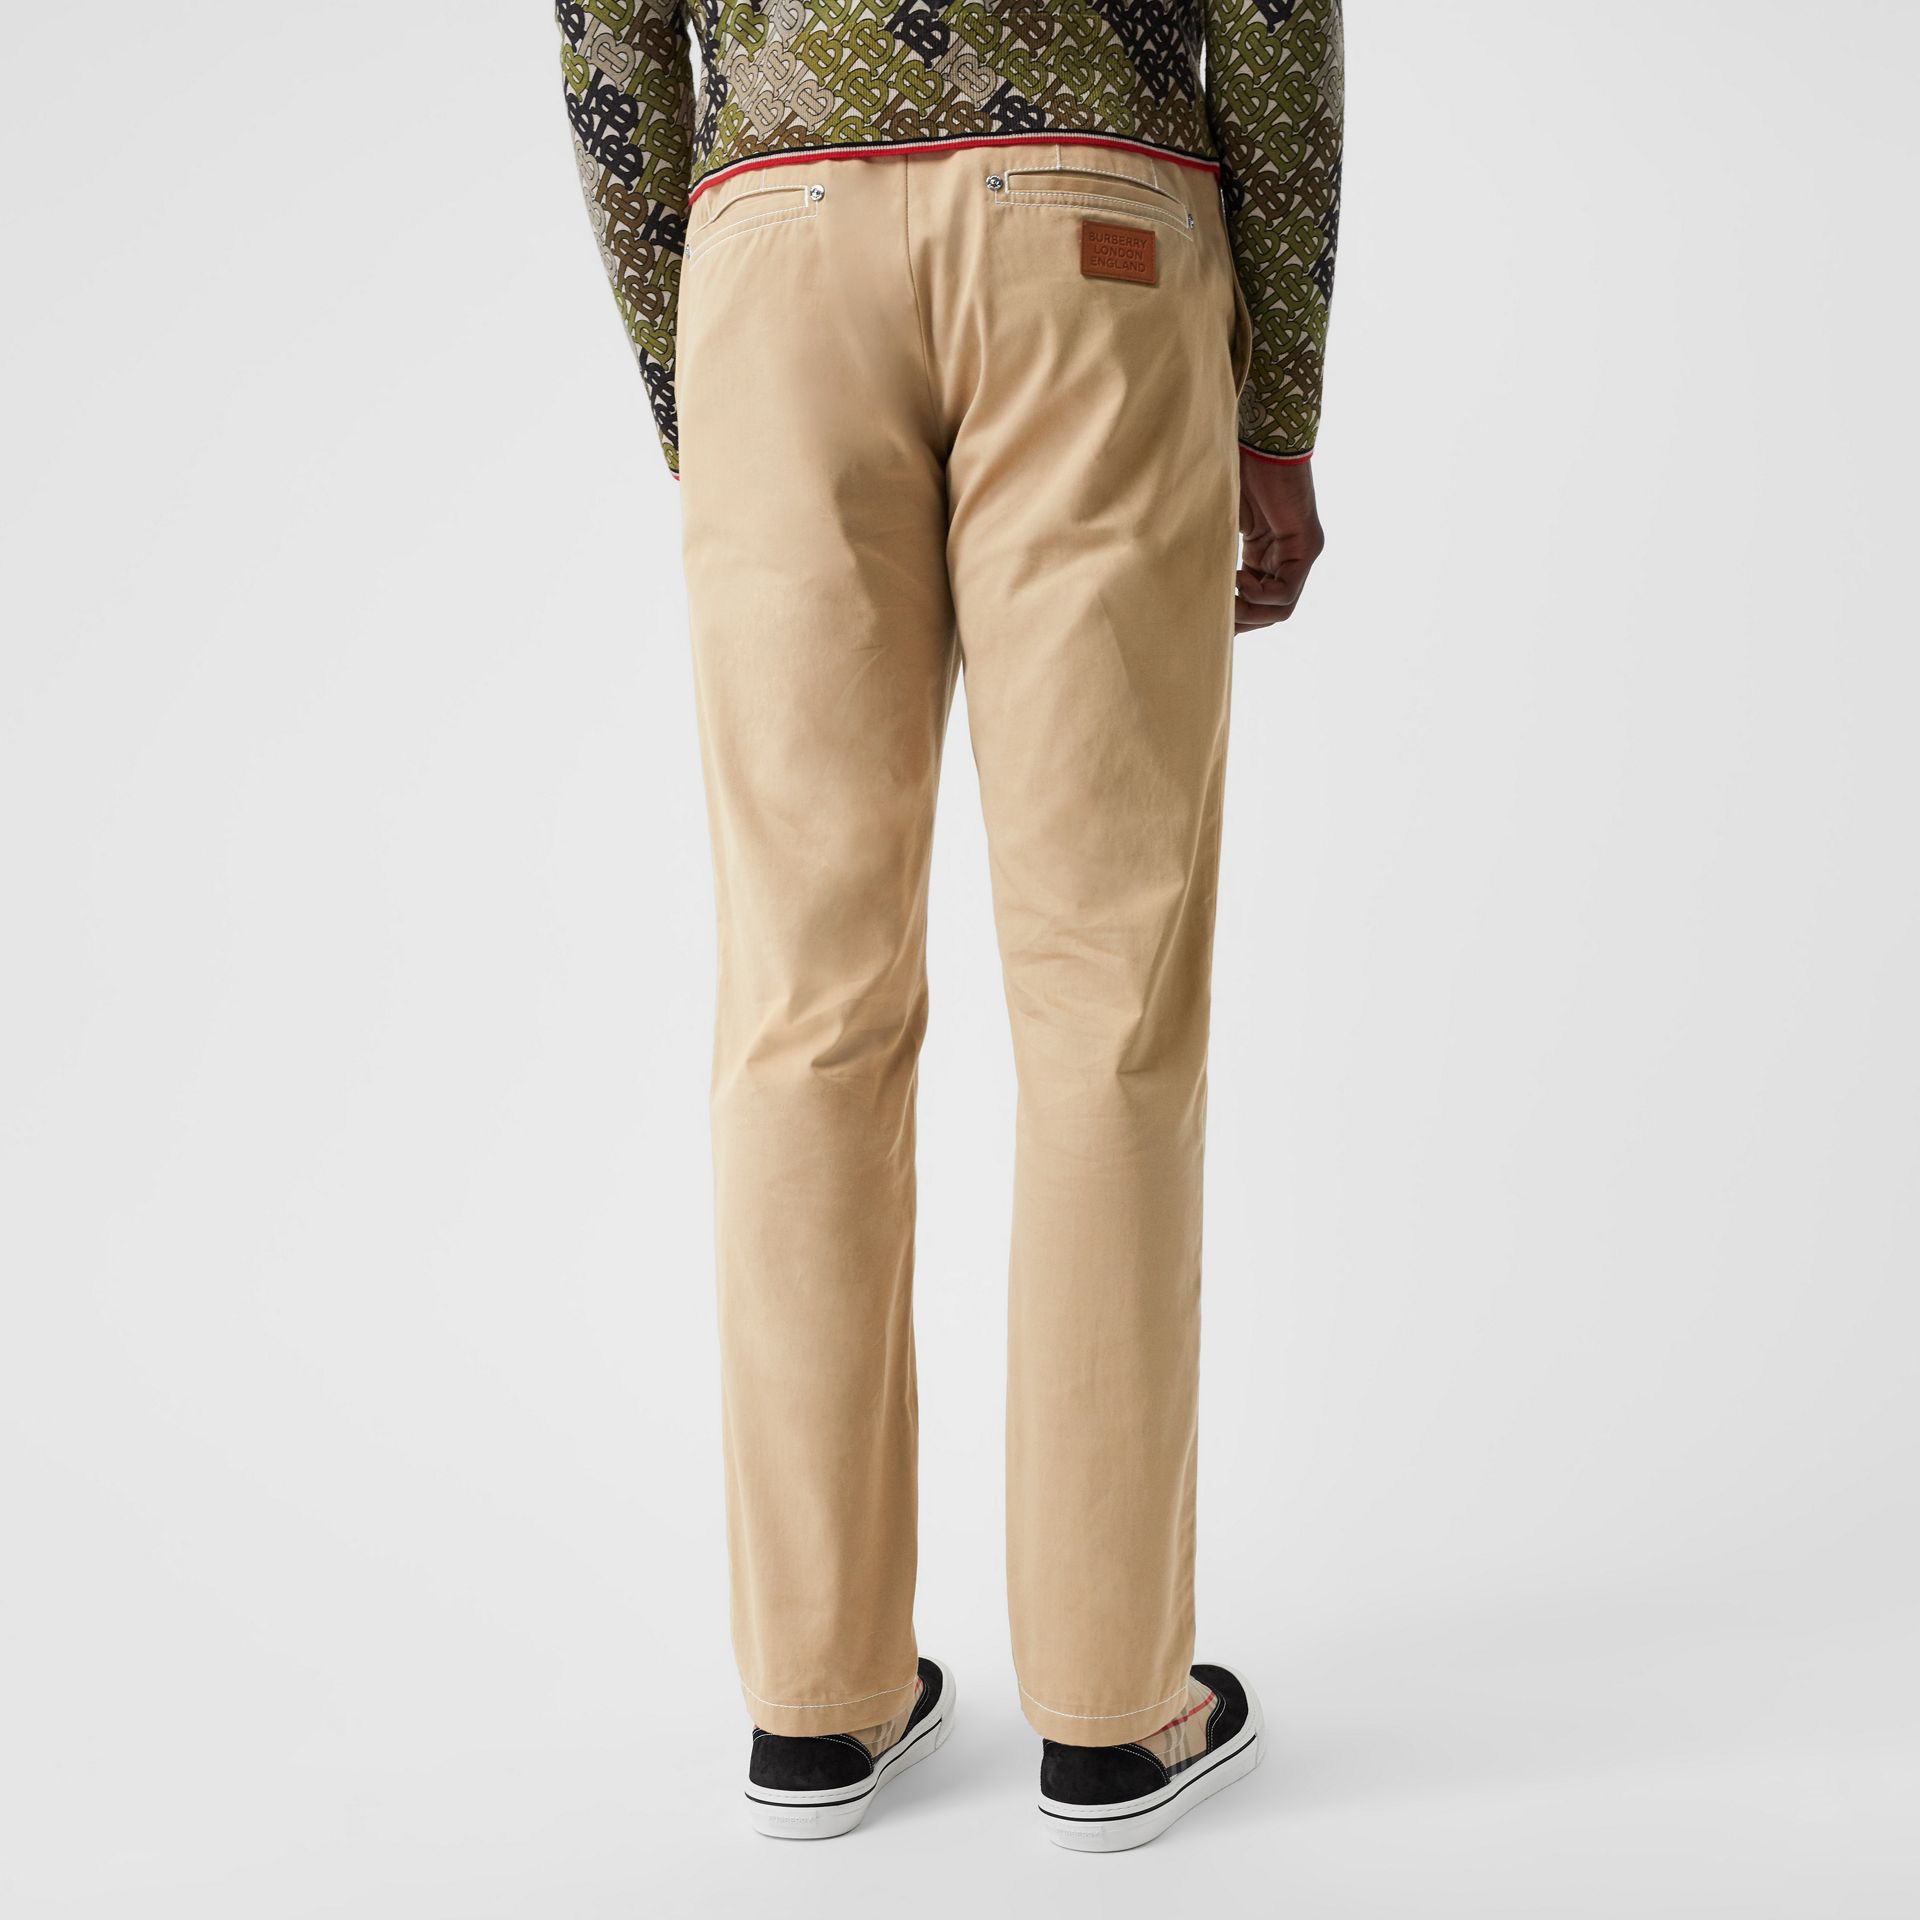 Pantalon chino slim en coton avec surpiqûres (Miel) - Homme | Burberry - photo de la galerie 2